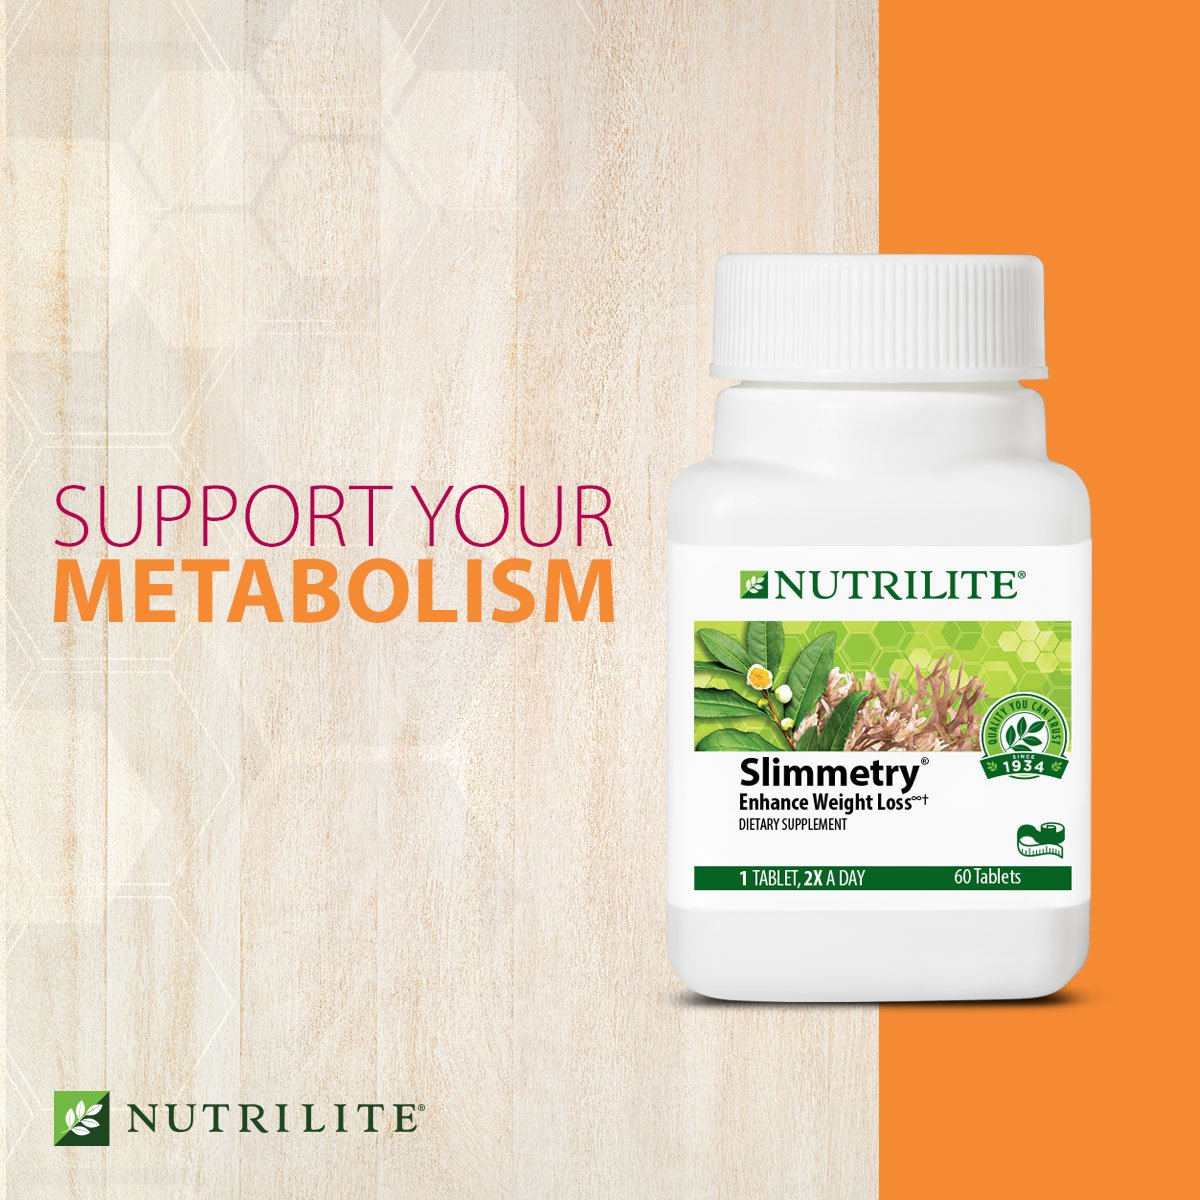 Support Nutrilite Slimmetry Weight Loss Support Healthy Metabolism